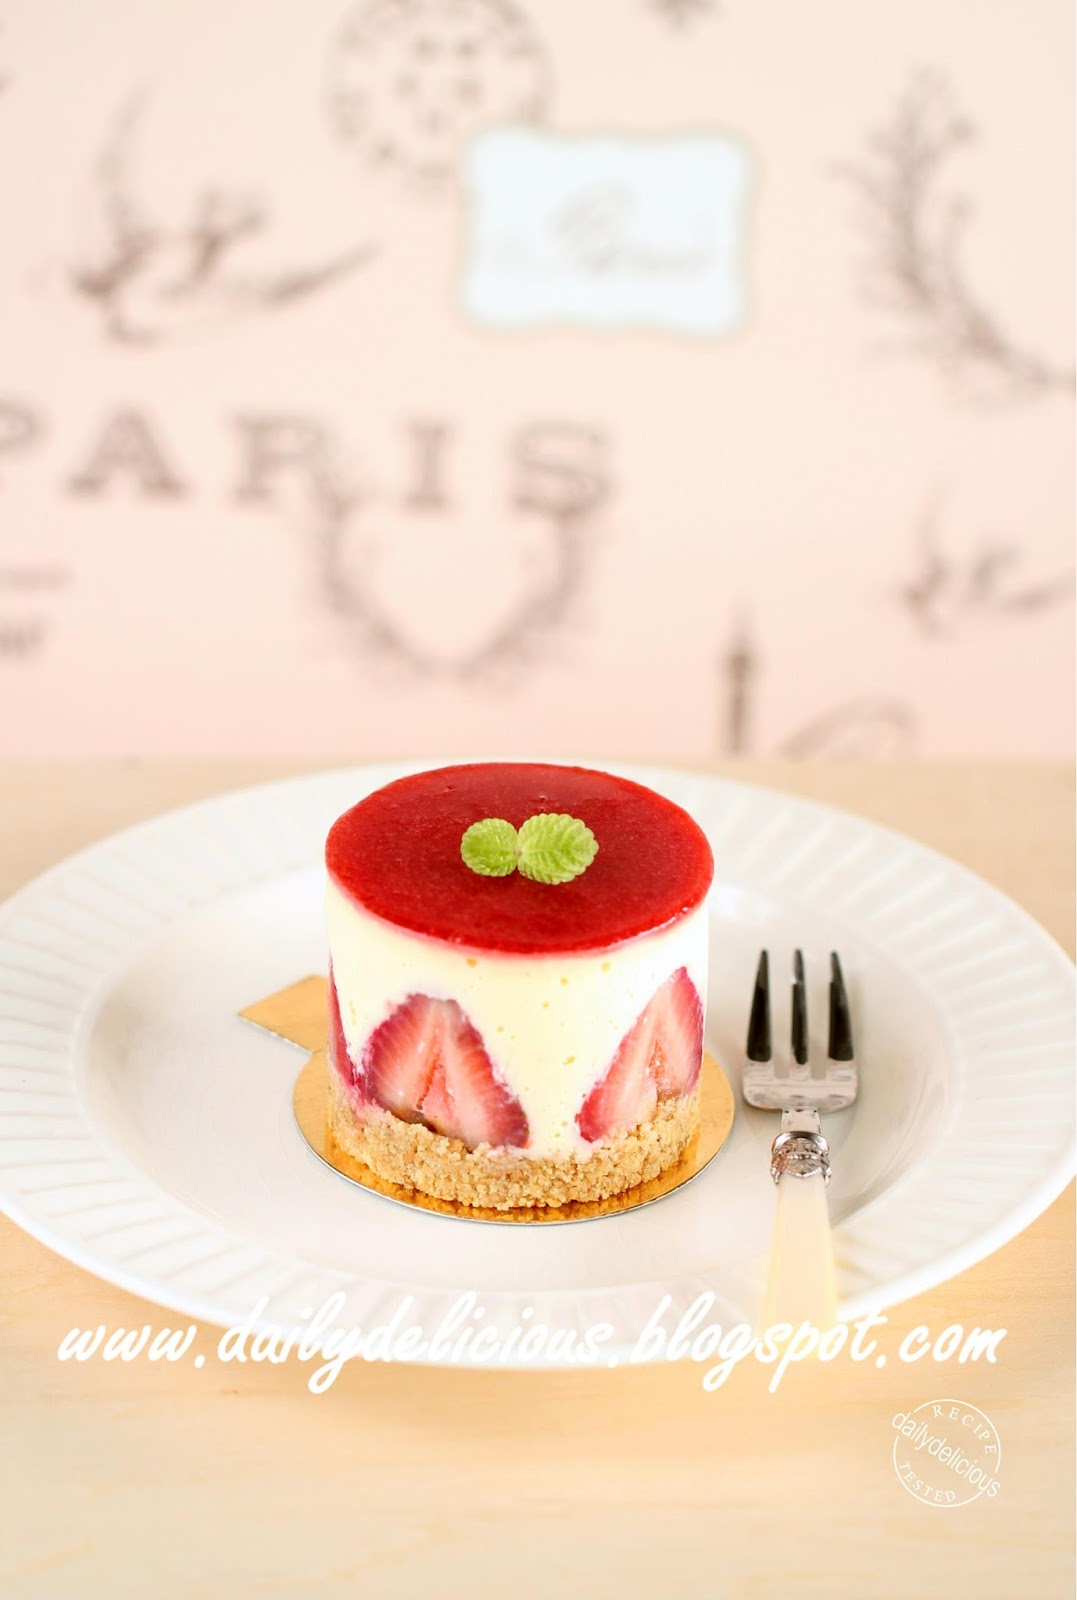 Dailydelicious Strawberry And White Chocolate Cheesecake Cute Little Cake